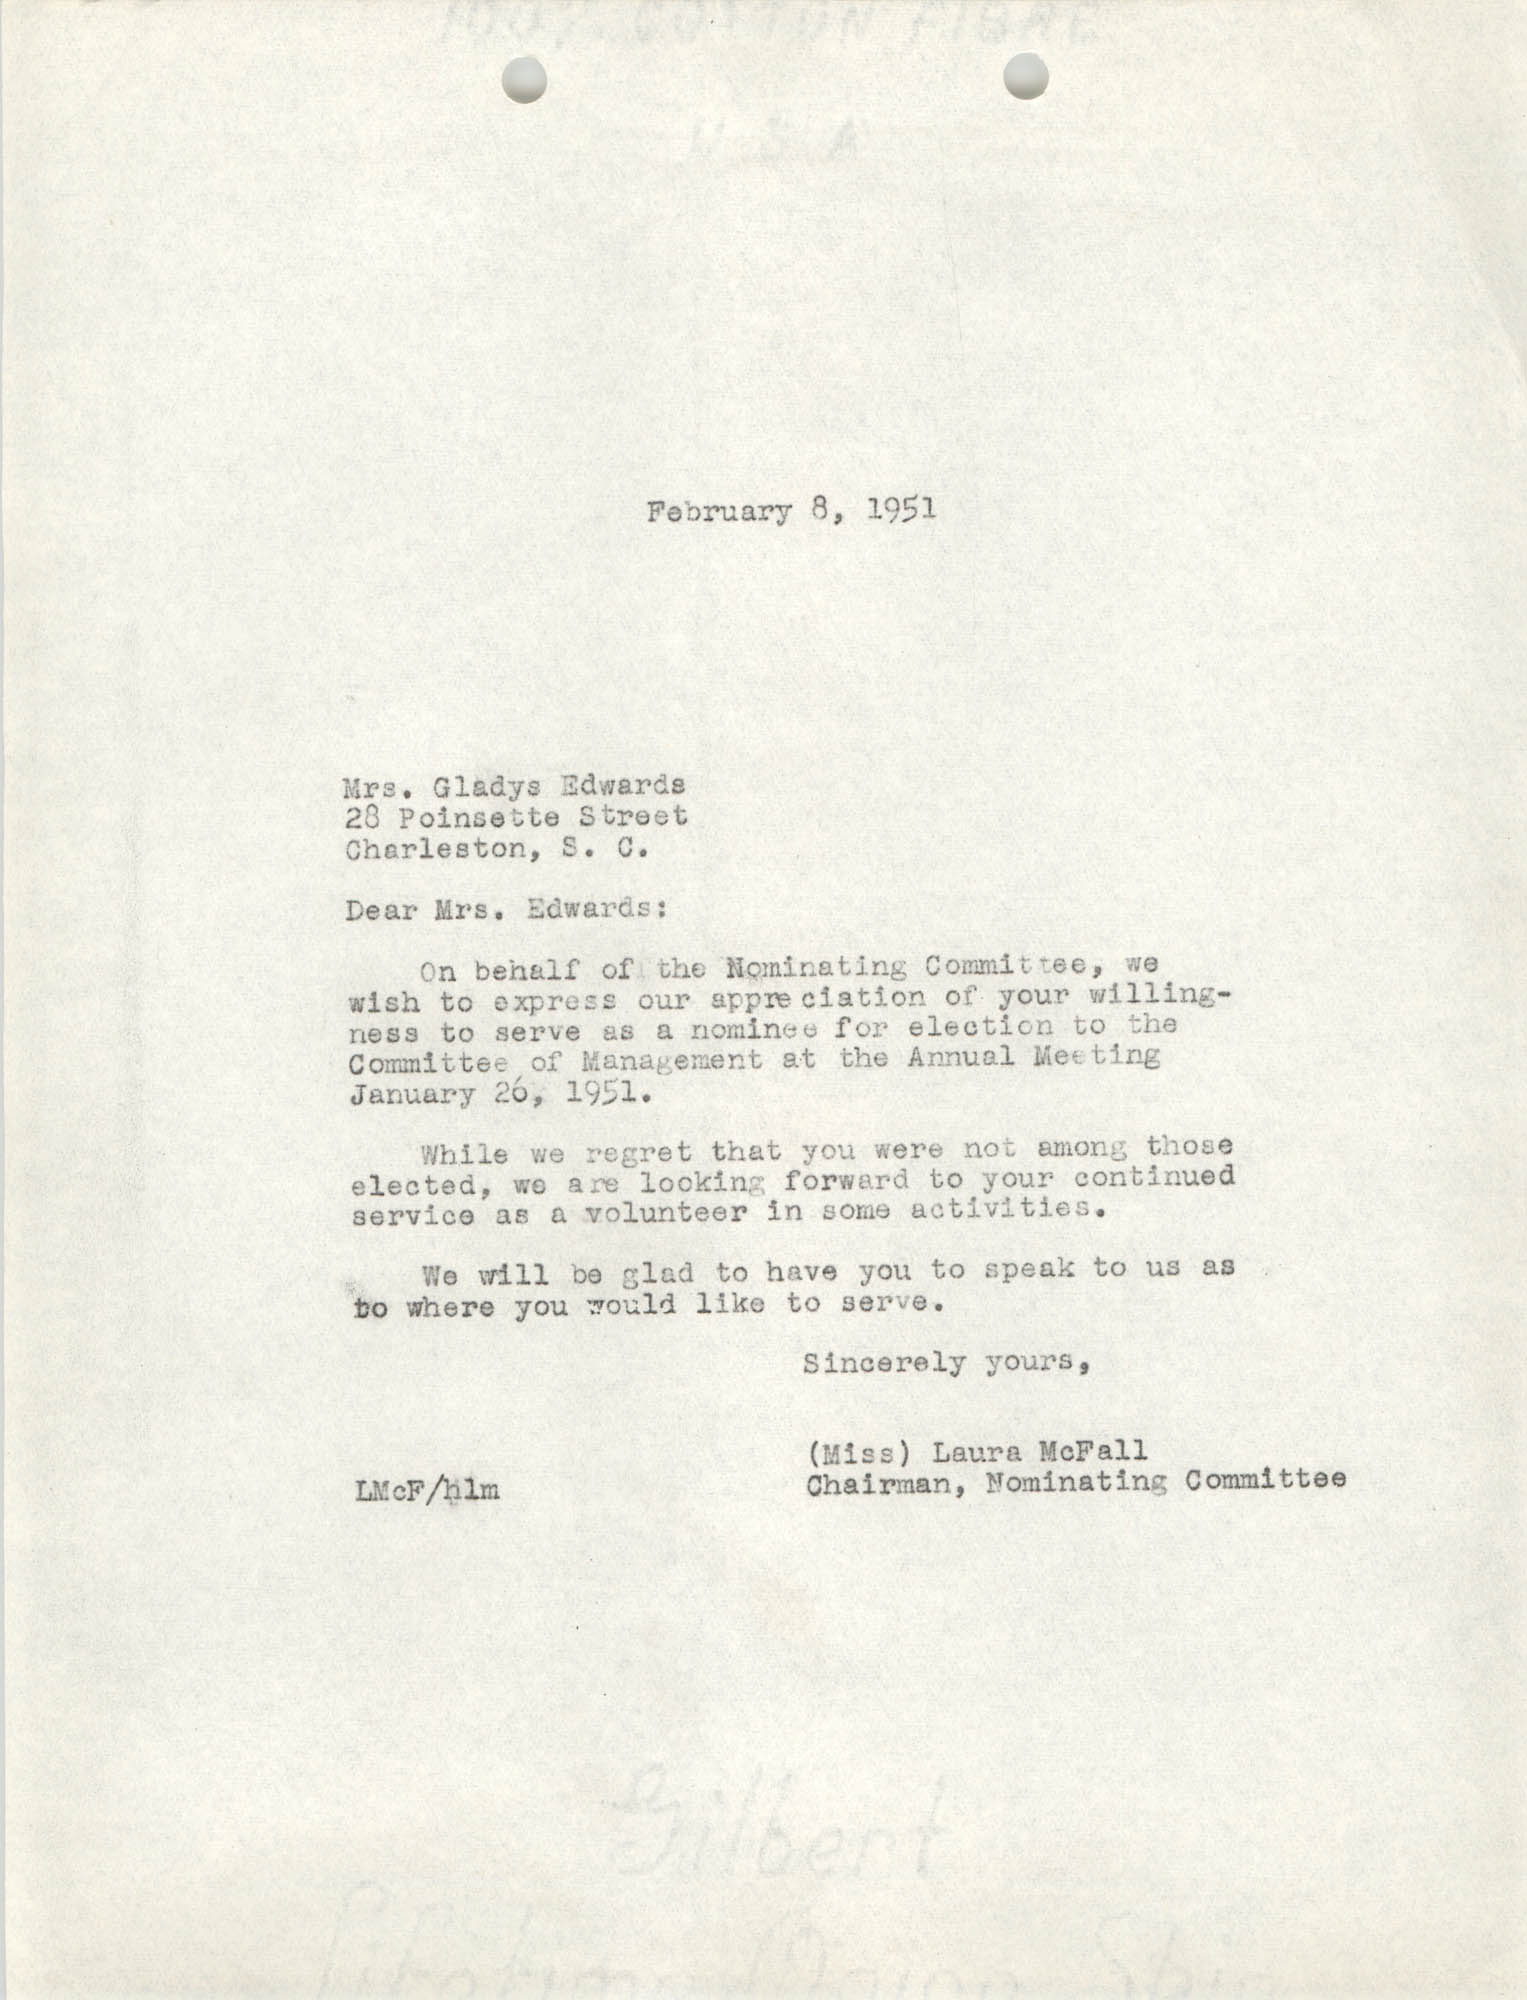 Letter from Laura McFall to Gladys Edwards, February 8, 1951